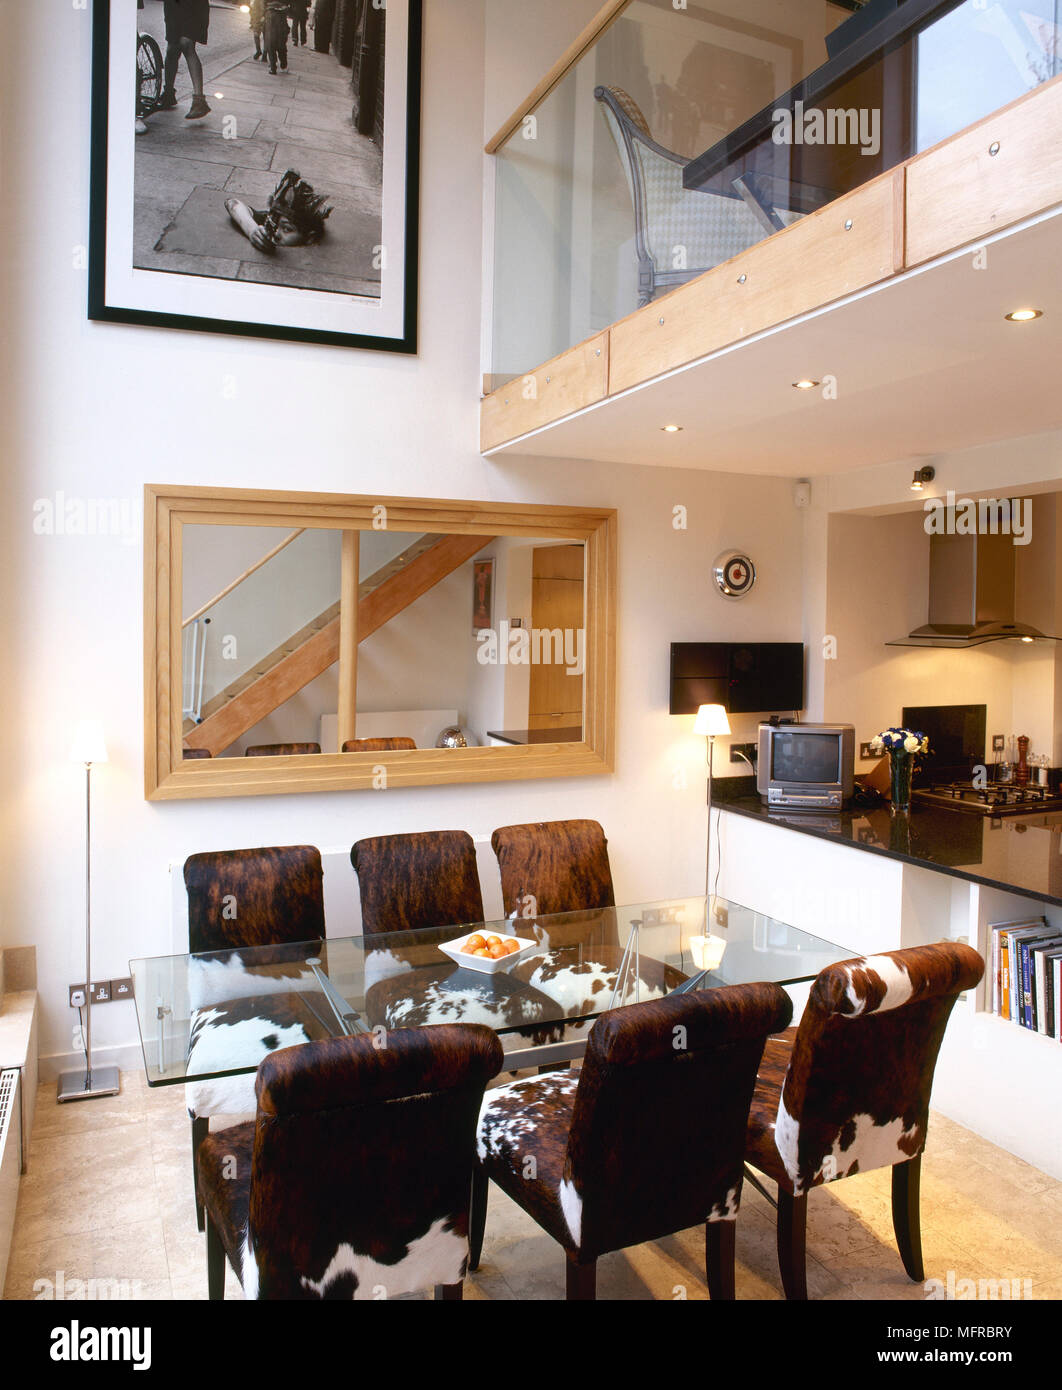 Split level, open plan apartment with view of dining room ...